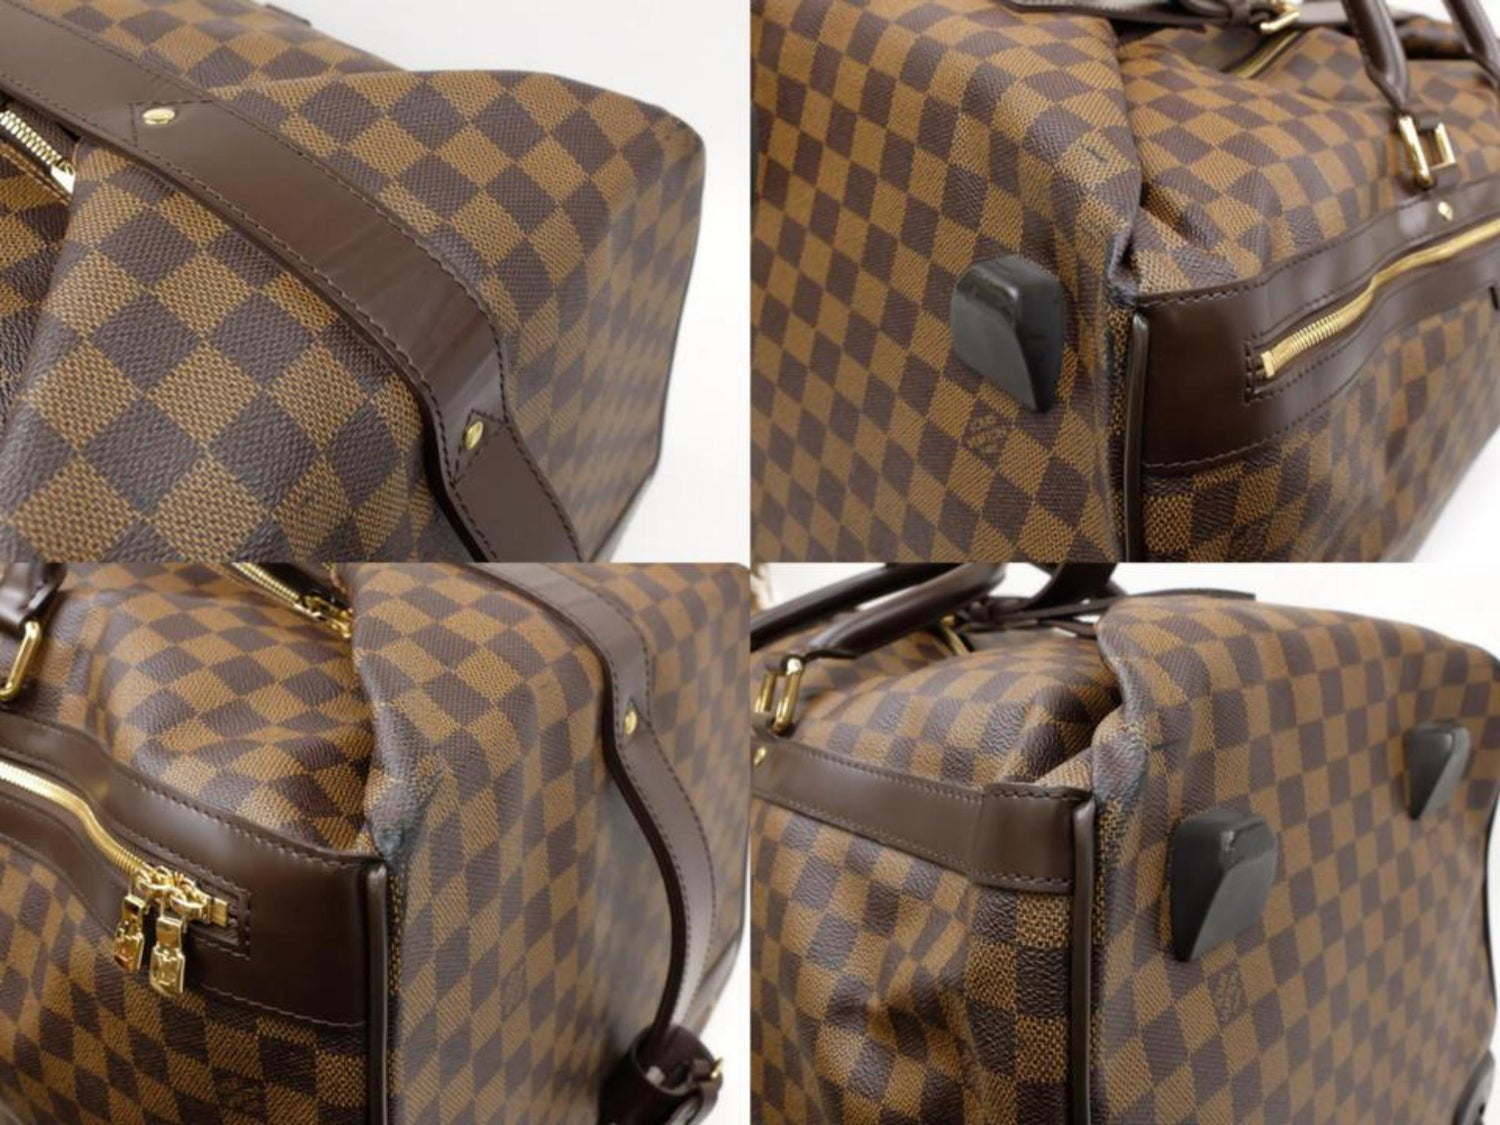 80e048999ab7 Louis Vuitton Duffle Eole Damier Ebene 50 Rolling Luggage 2way 234985  Travel Bag For Sale at 1stdibs